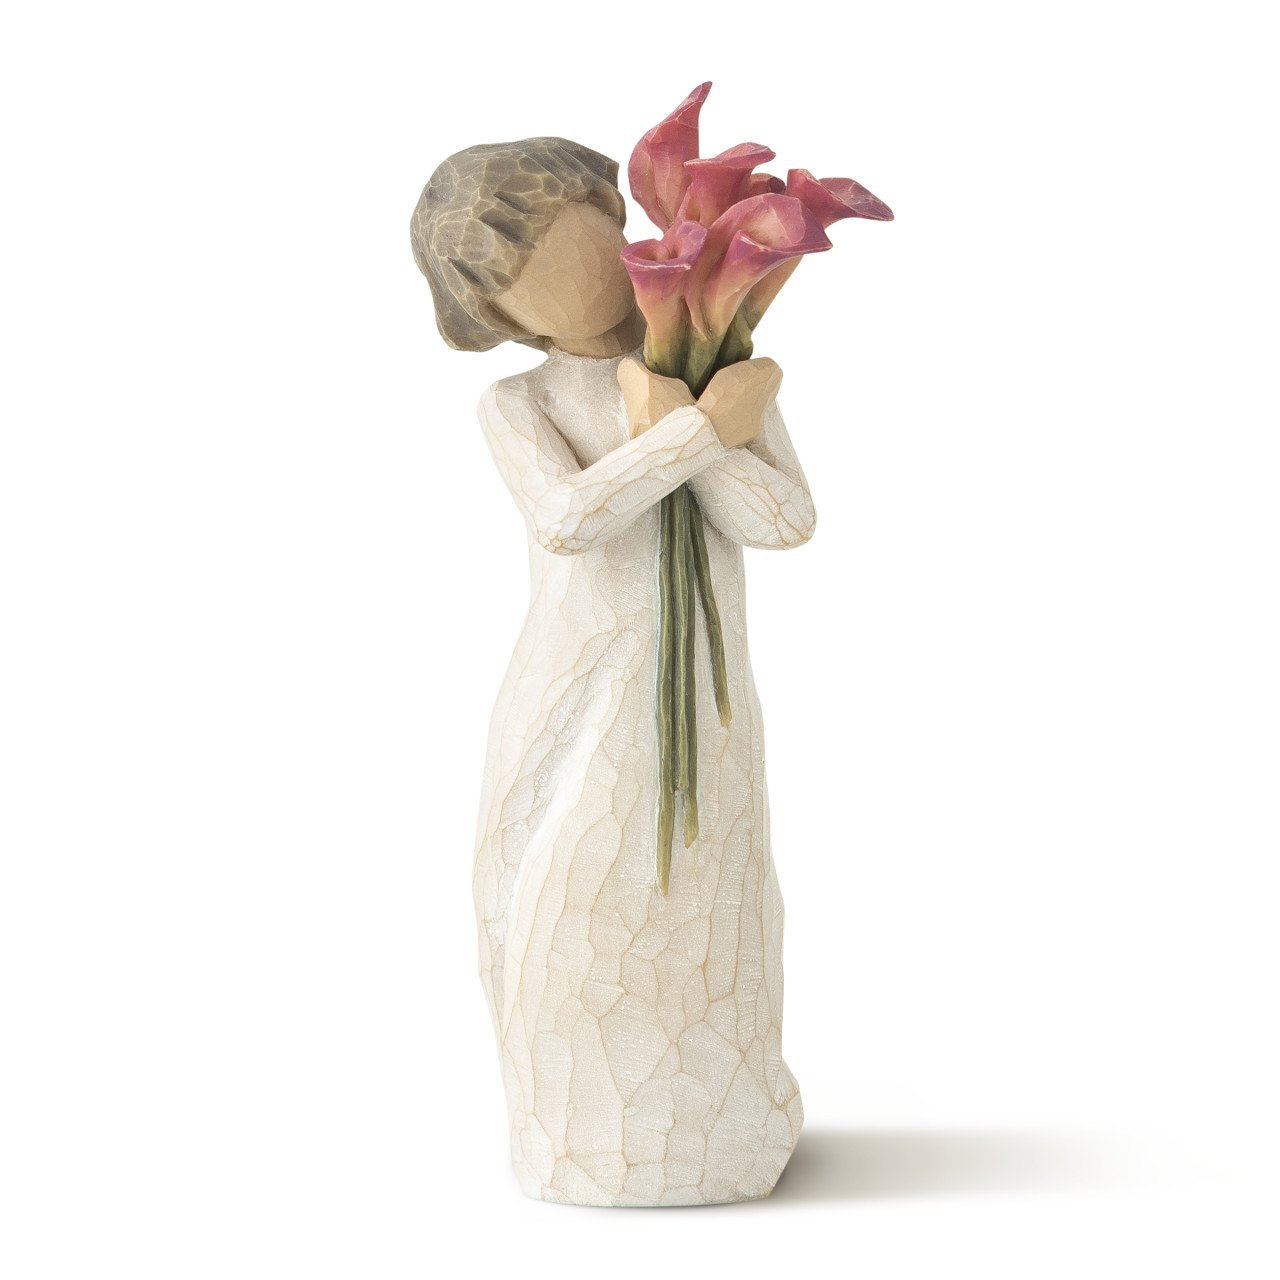 Willow Tree hand-painted sculpted figure, Bloom by Willow Tree